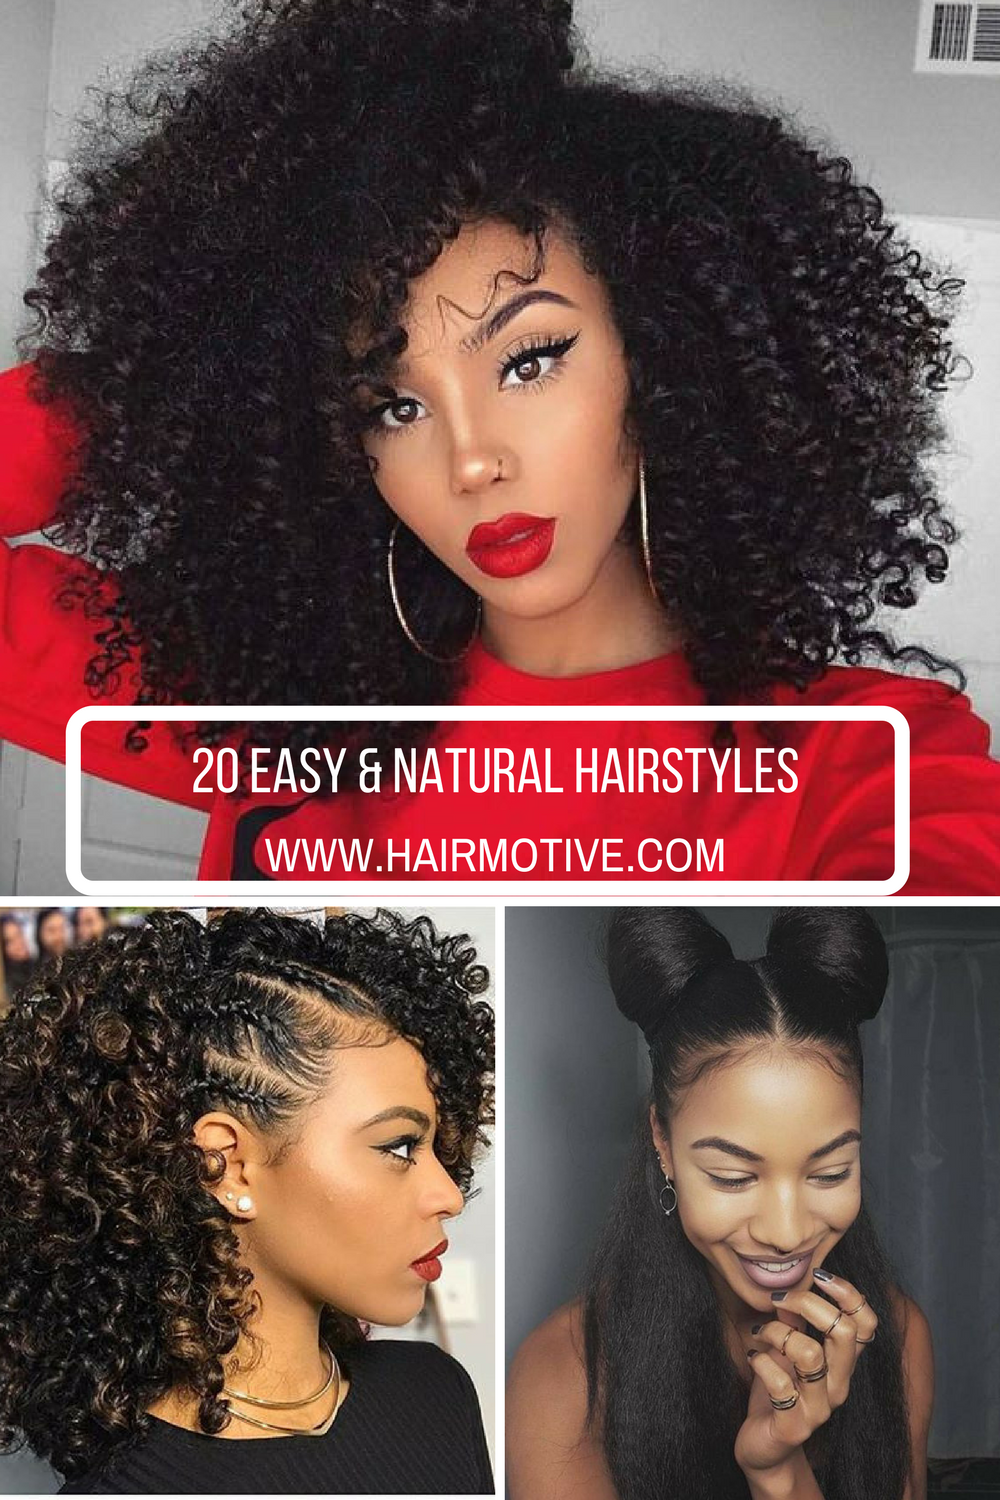 your natural hairstyles for afro-textured hair, for busy